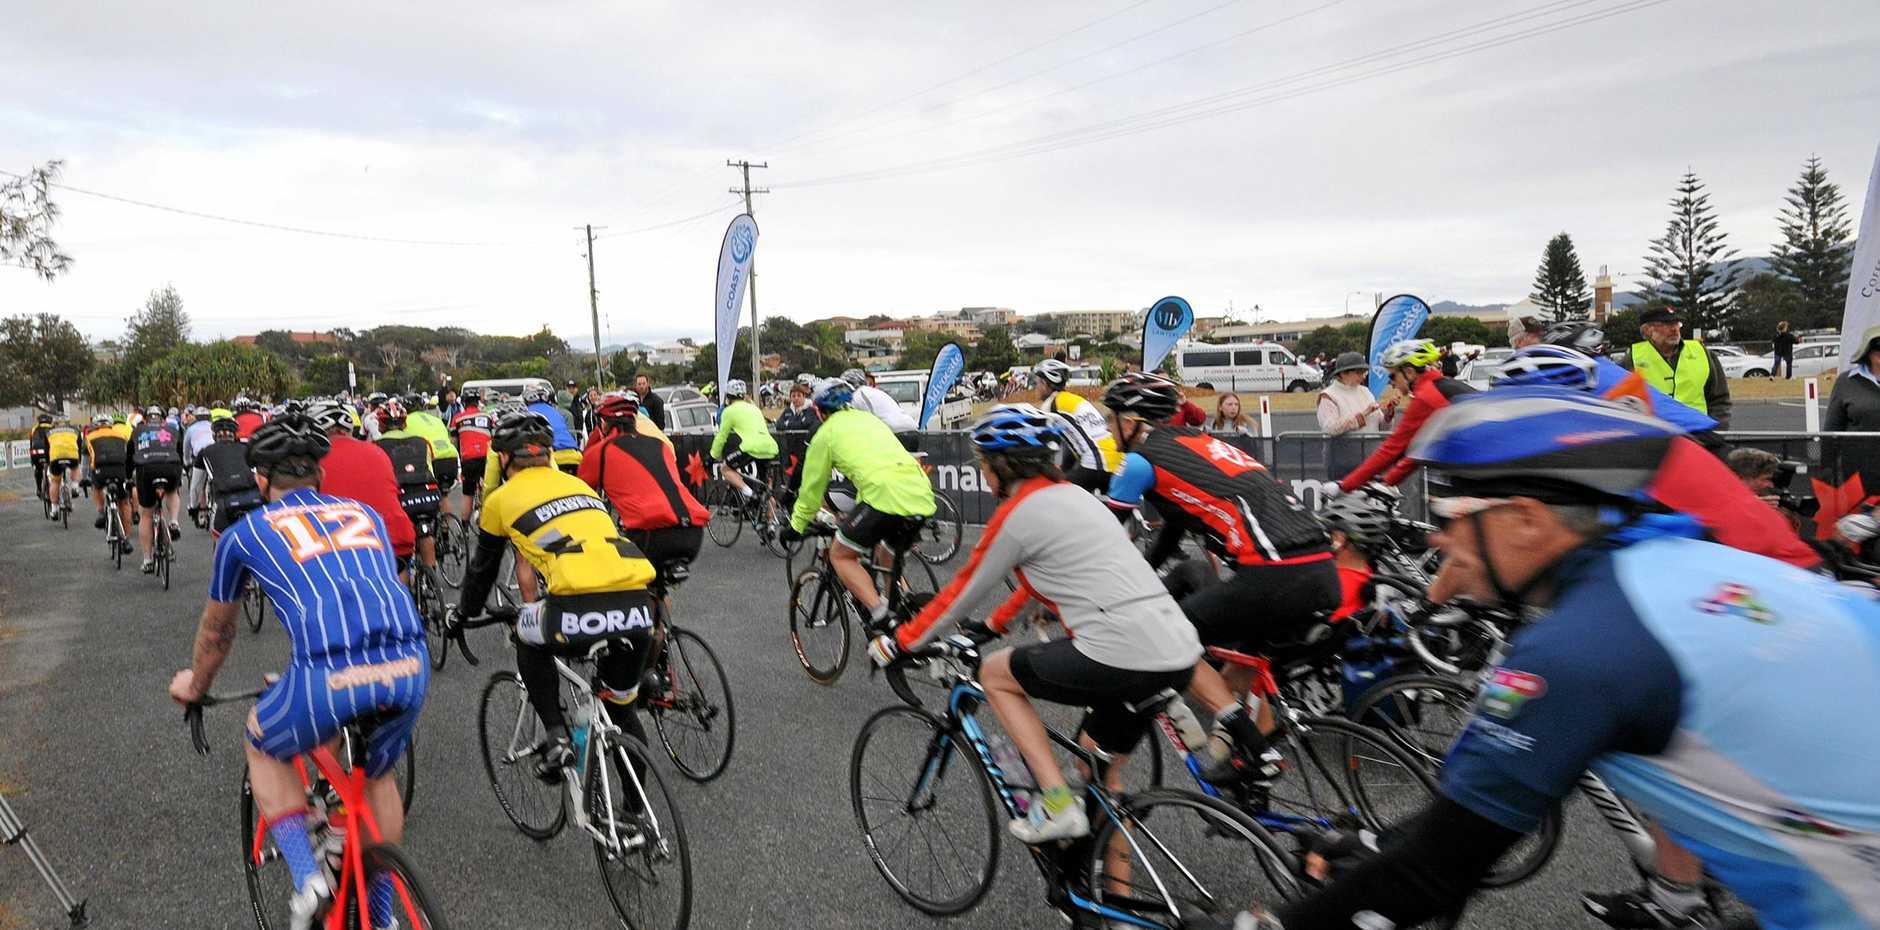 The C.ex McDonald's Cycle Challenge will be held in October.